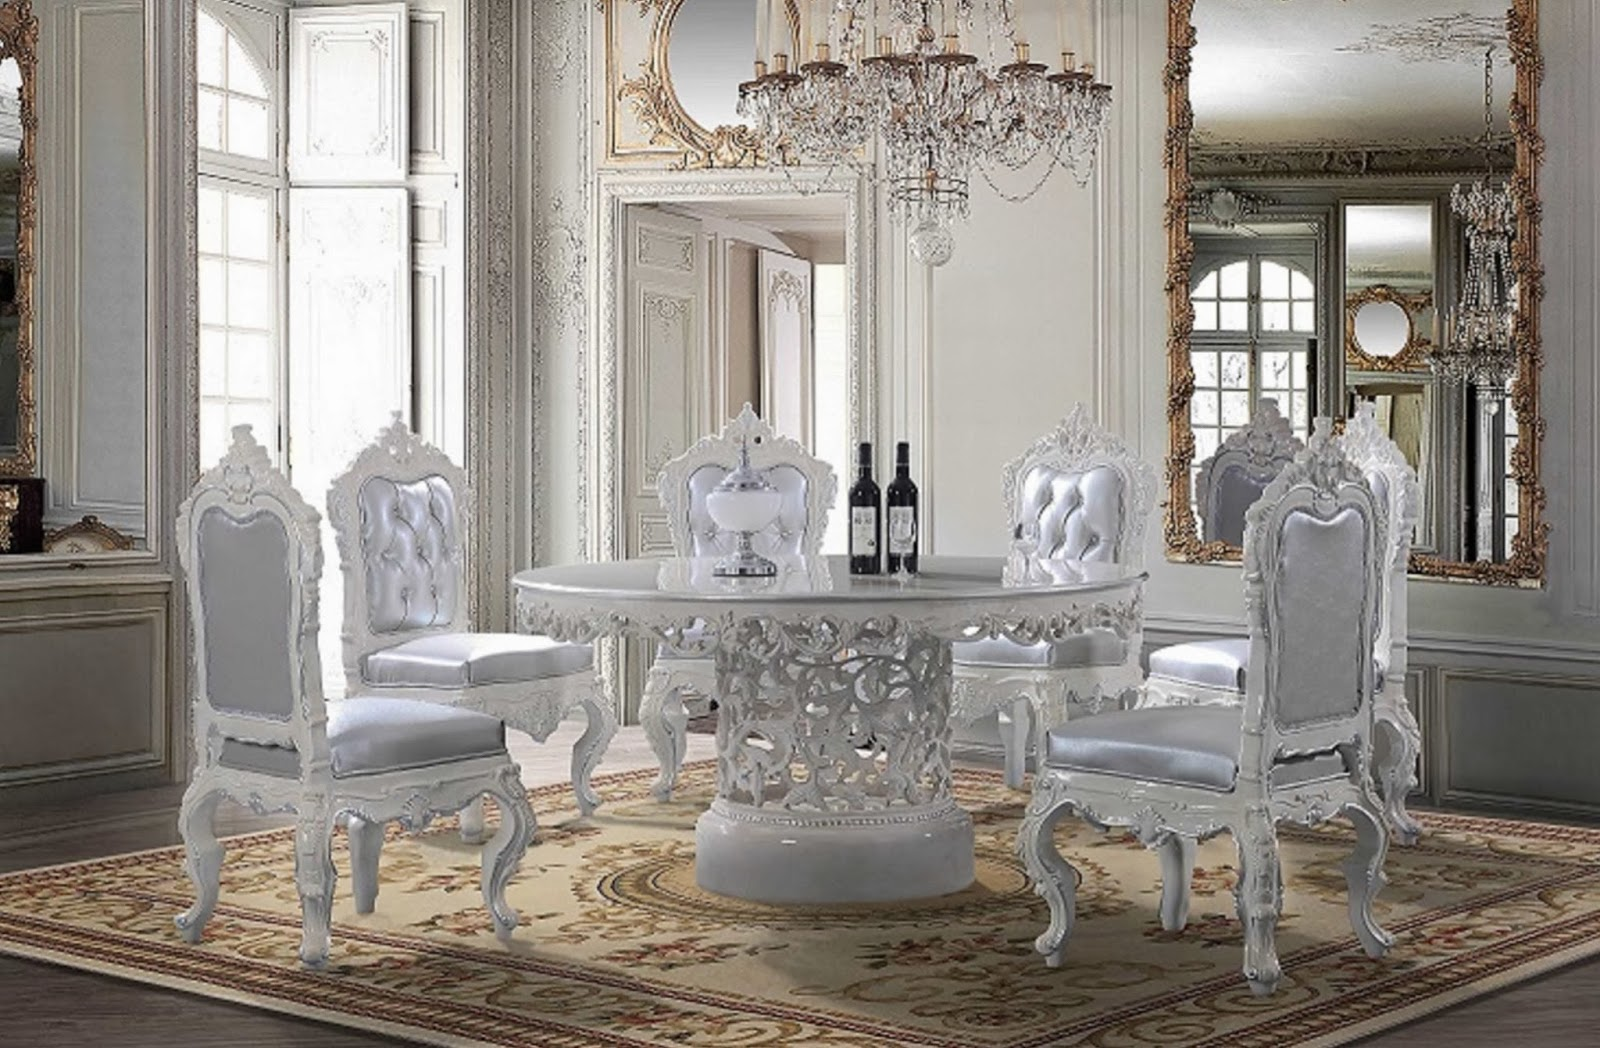 Dealshopperzcom HDS Victorian Round Dining Table With